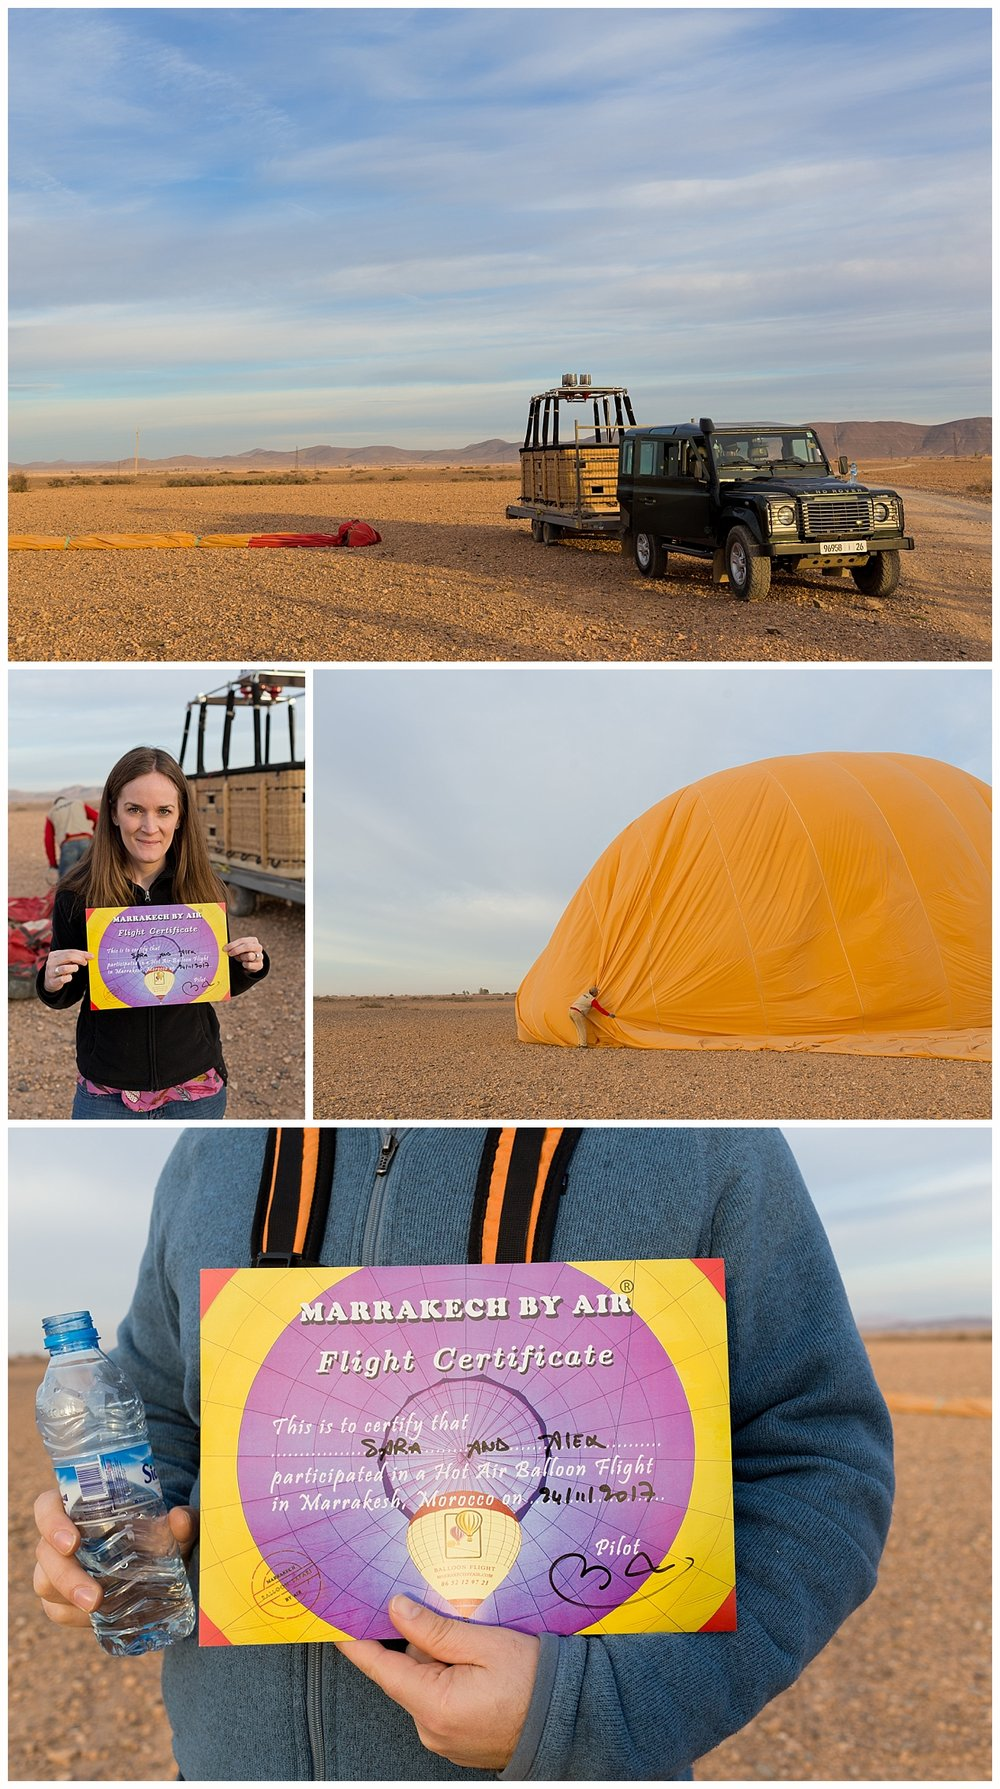 hot air balloon adventure certificate - Marrakech by AIr